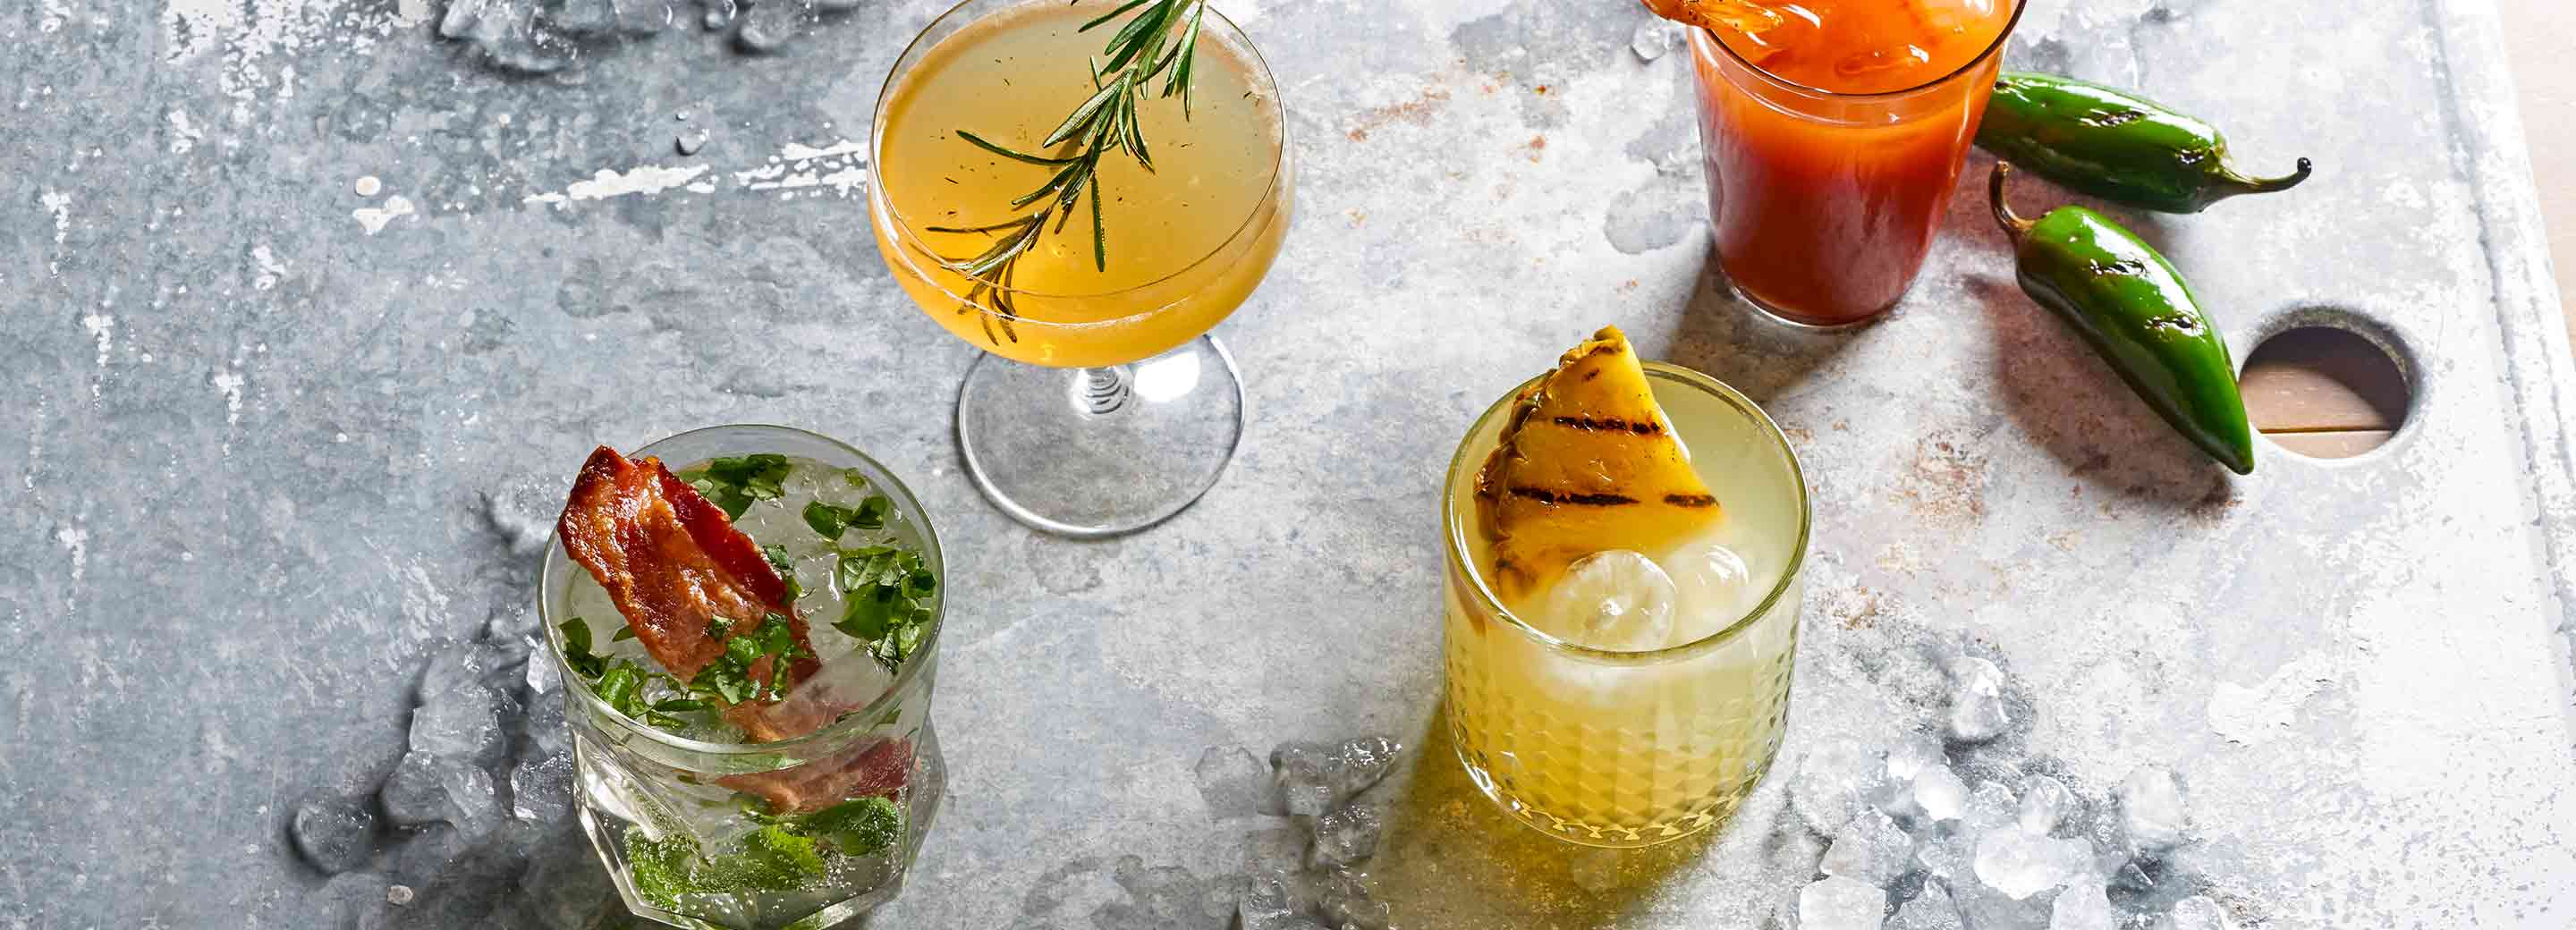 Four cocktails made from grilled ingredients